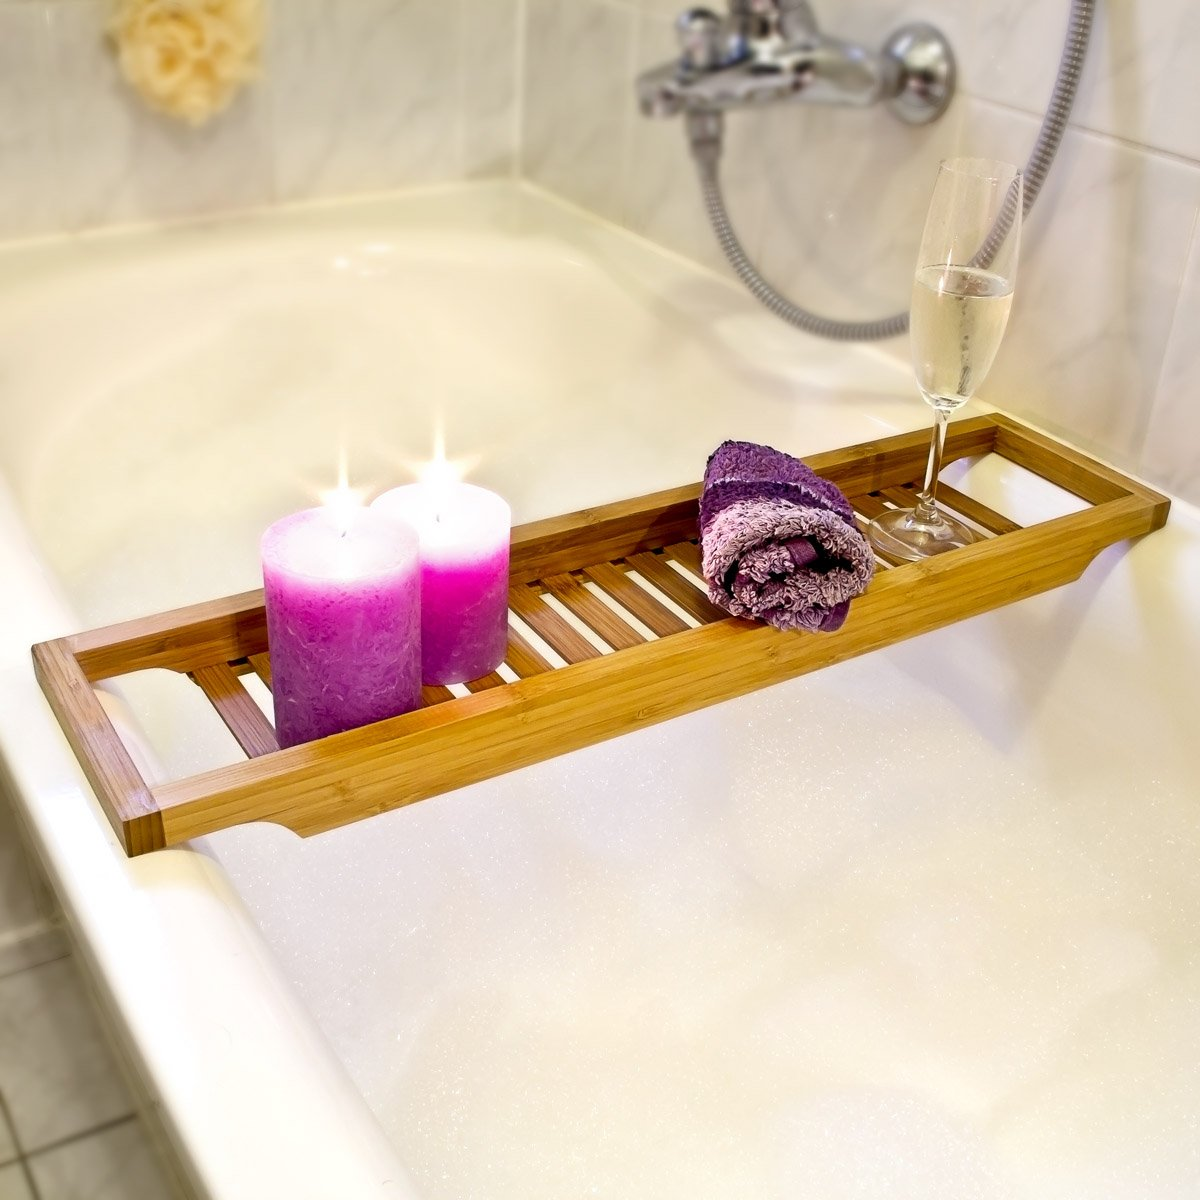 Relaxdays Bamboo Bathtub Caddy, Wooden Bathroom Rack, 4 x 64 x 15 cm ...